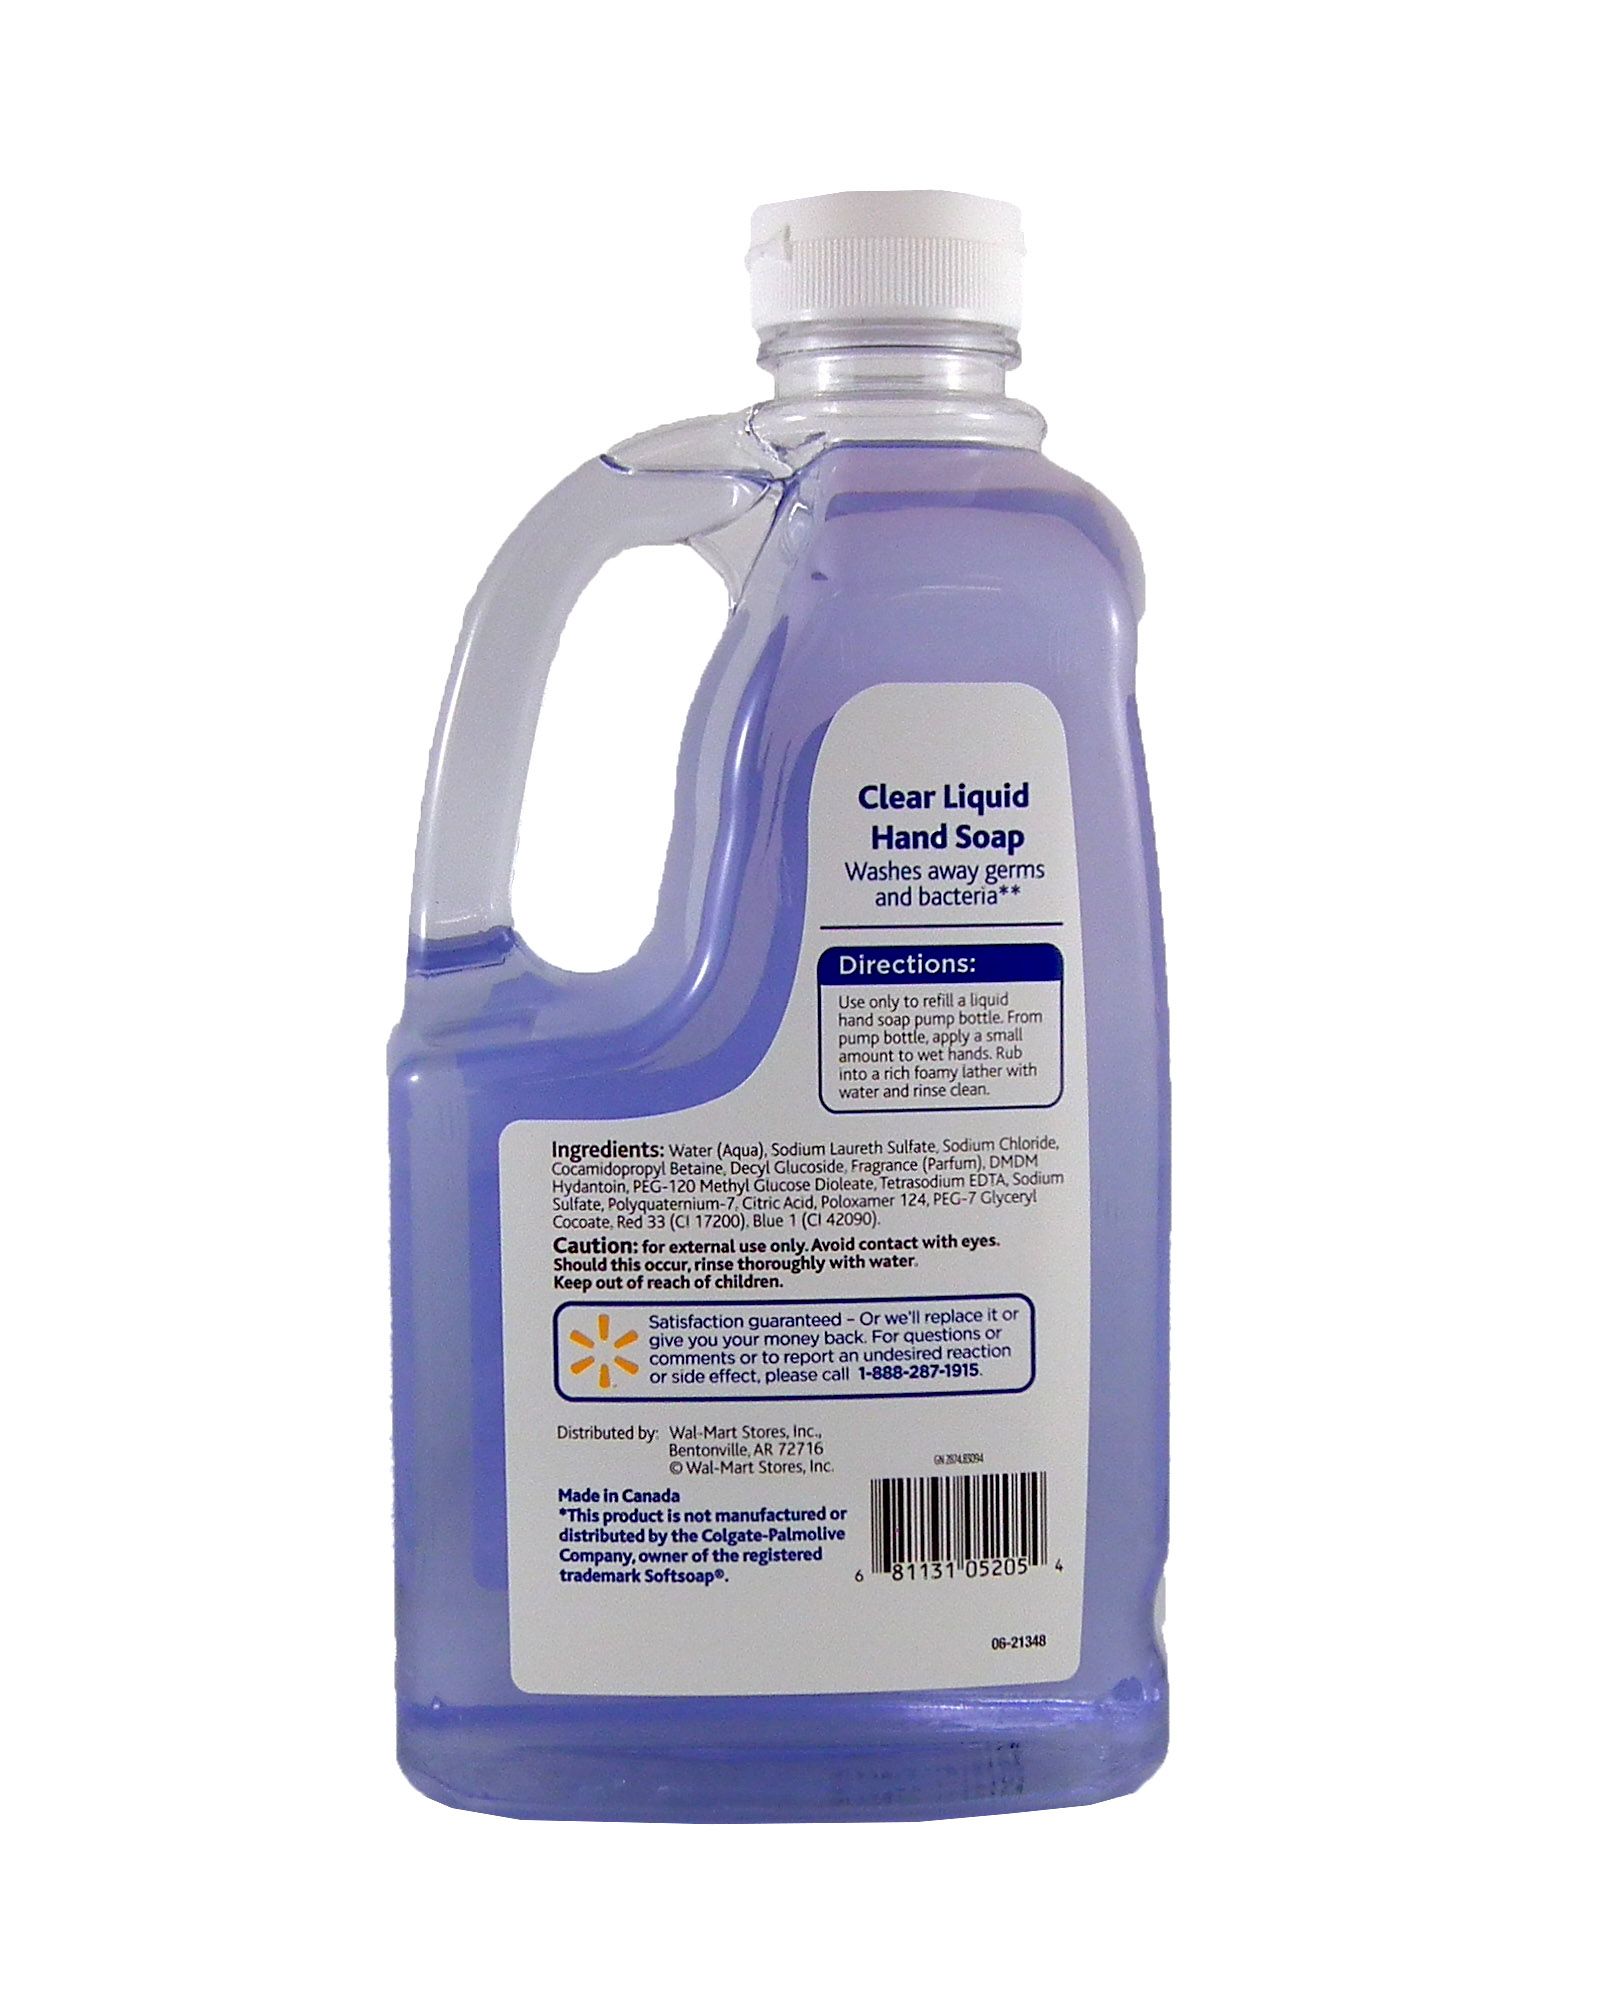 Hand Soap Refill Equate Clear Liquid Hand Soap Refill 56 Oz